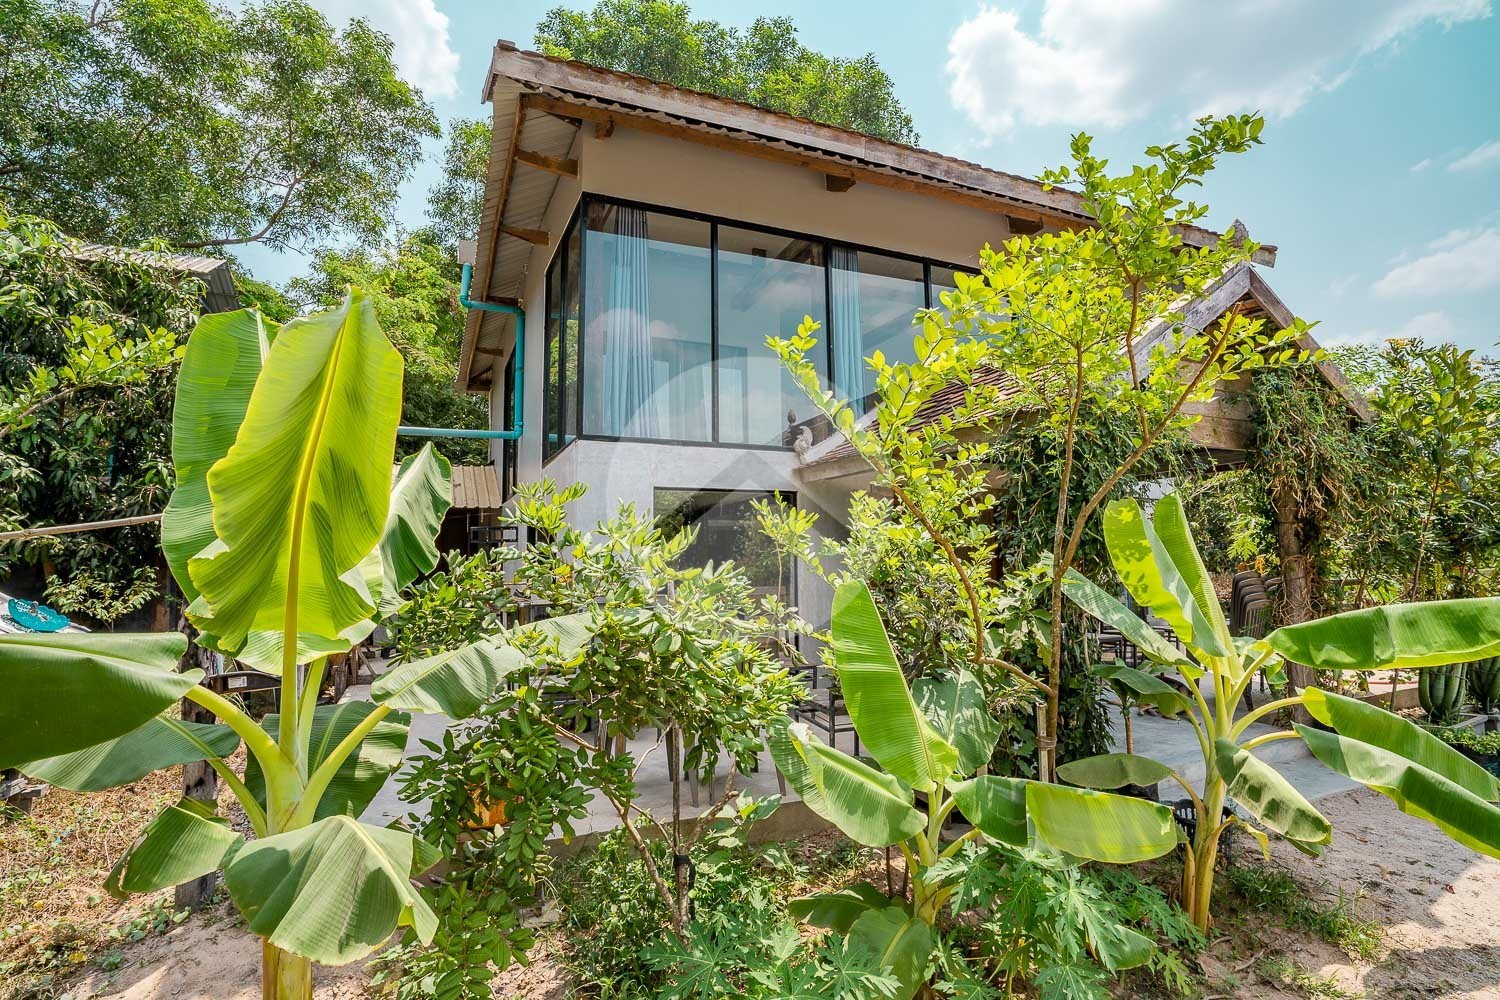 3 Bedroom Villa  For Sale - Kouk Chak, Siem Reap